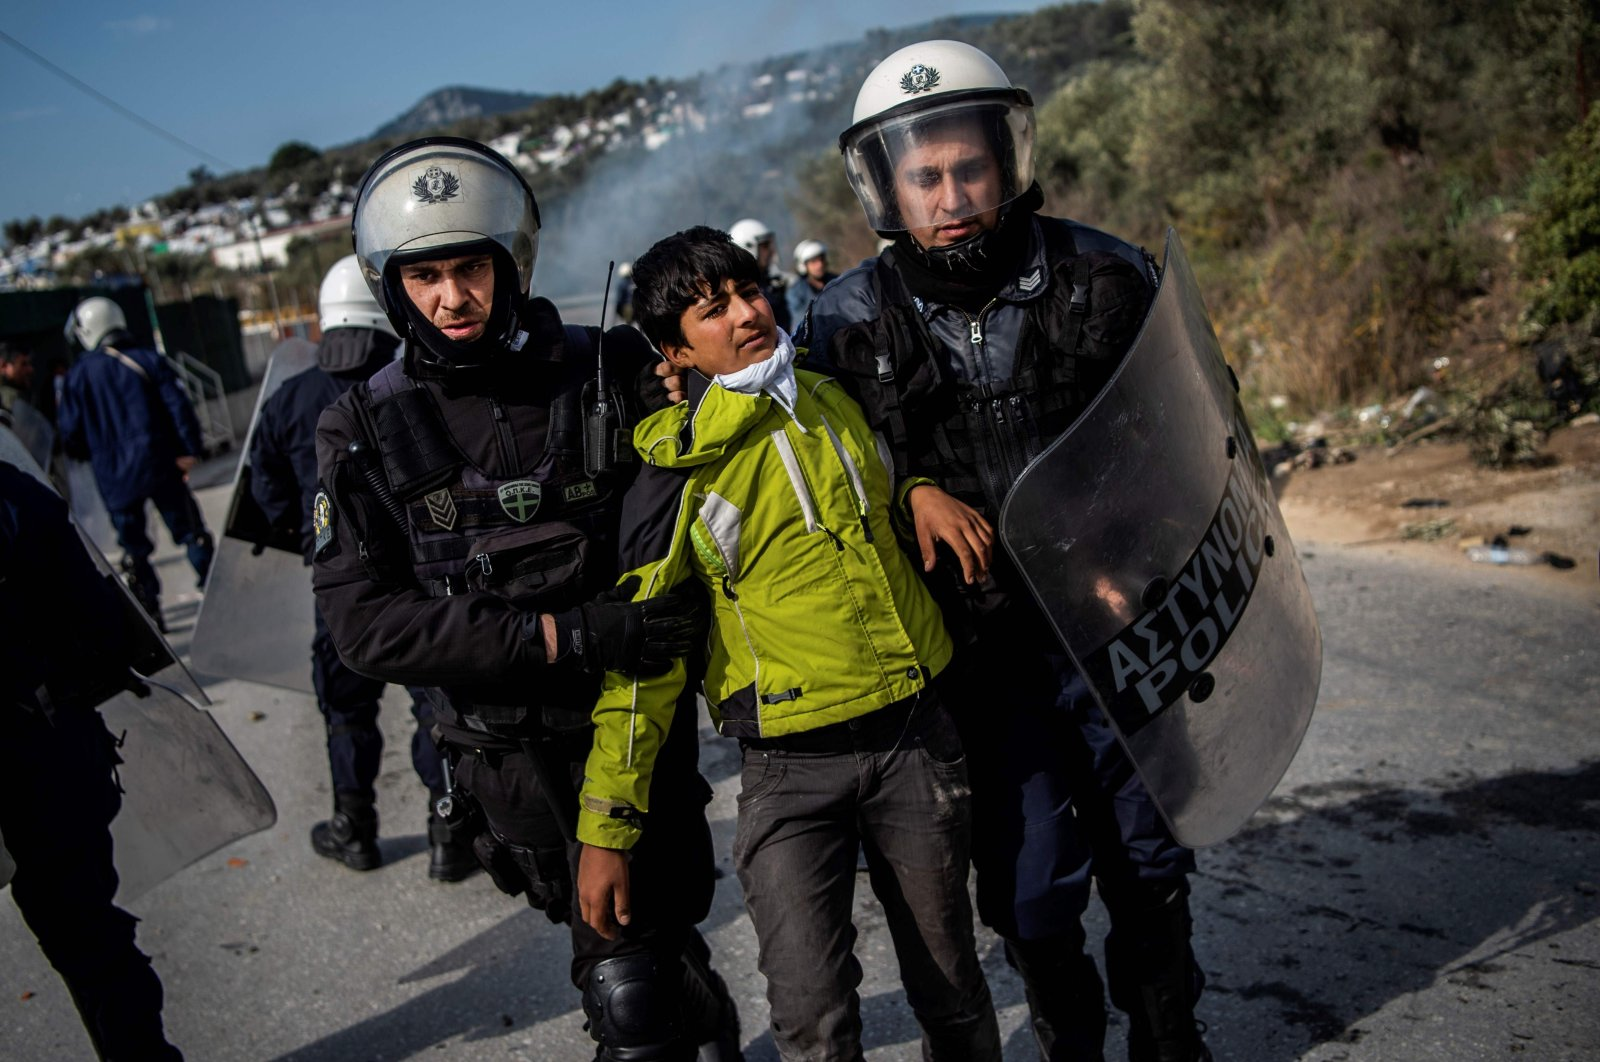 Riot police detain a migrant during clashes near the Moria camp for refugees and migrants, on the island of Lesbos, on March 2, 2020. (AFP Photo)